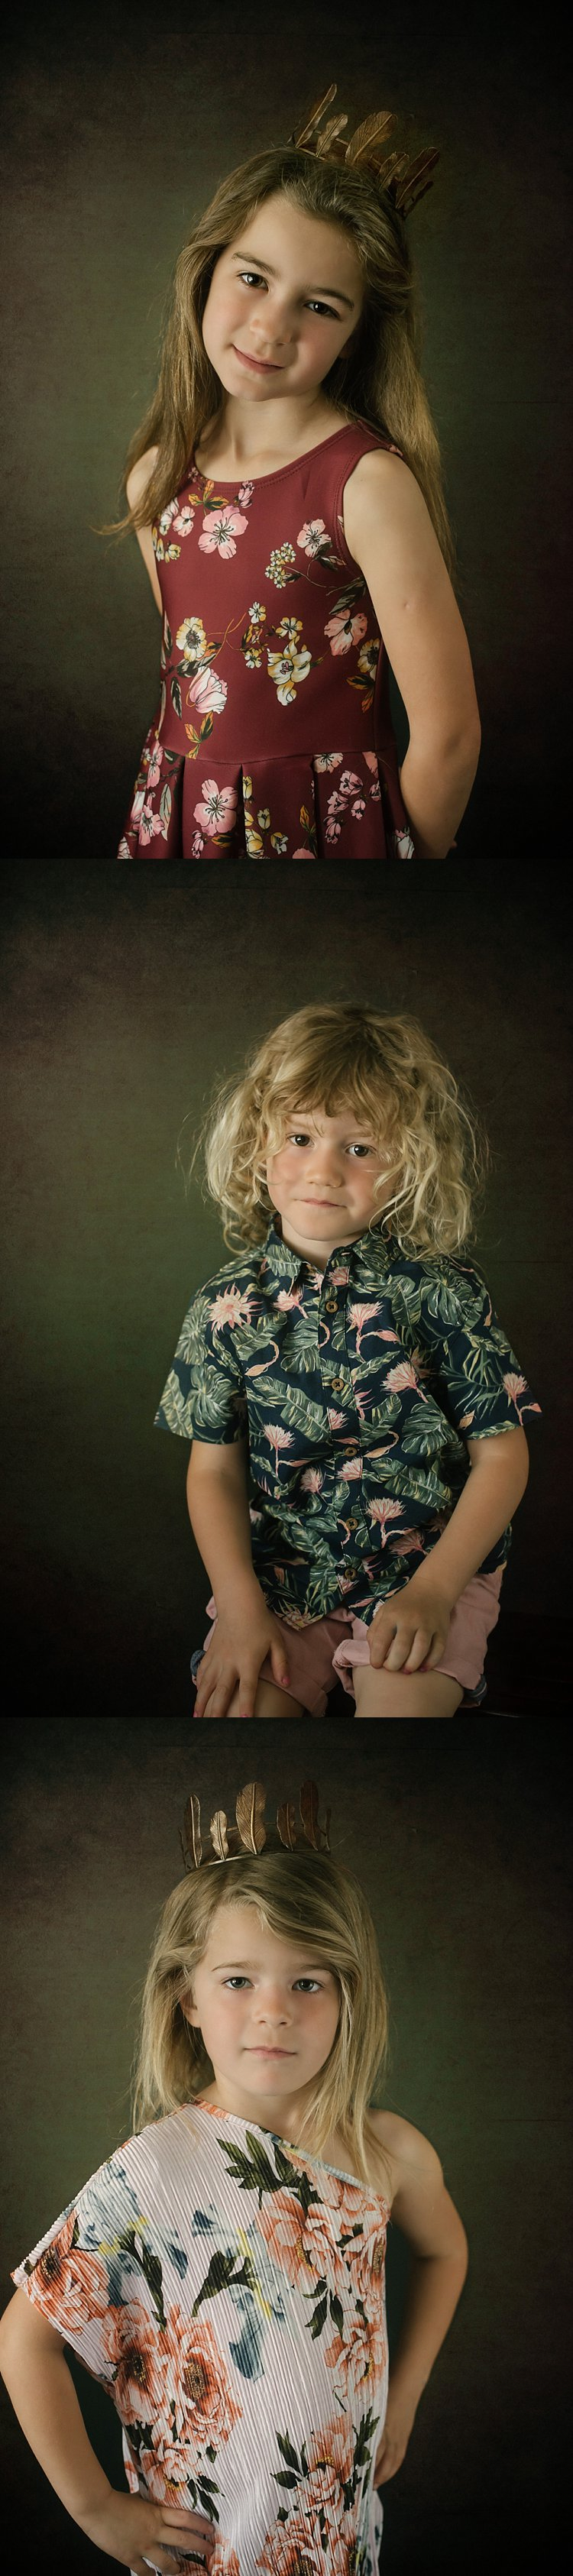 children-portrait-photographer-london-lily-sawyer-photo_0000